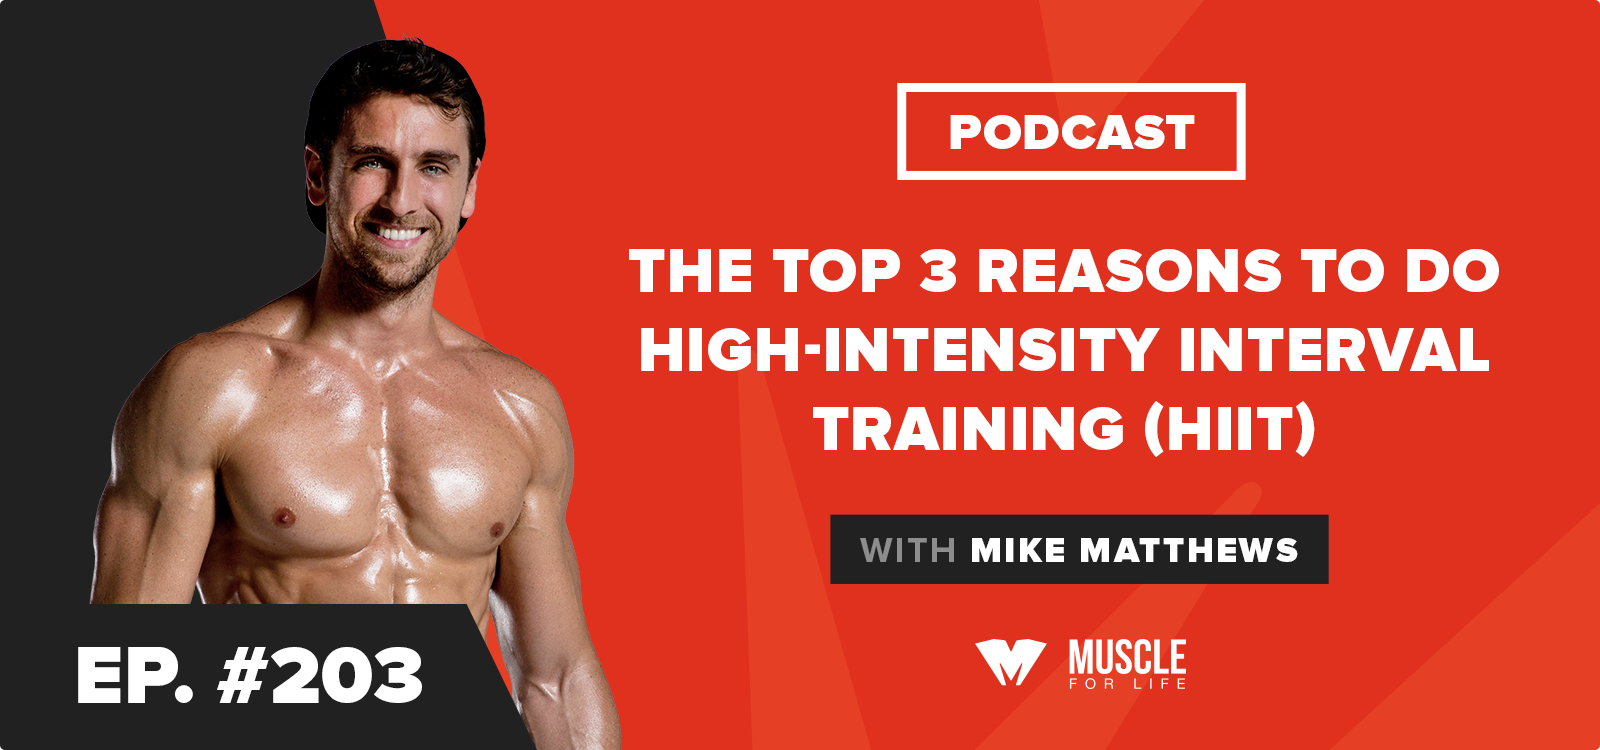 The Top 3 Reasons to Do High-Intensity Interval Training (HIIT)